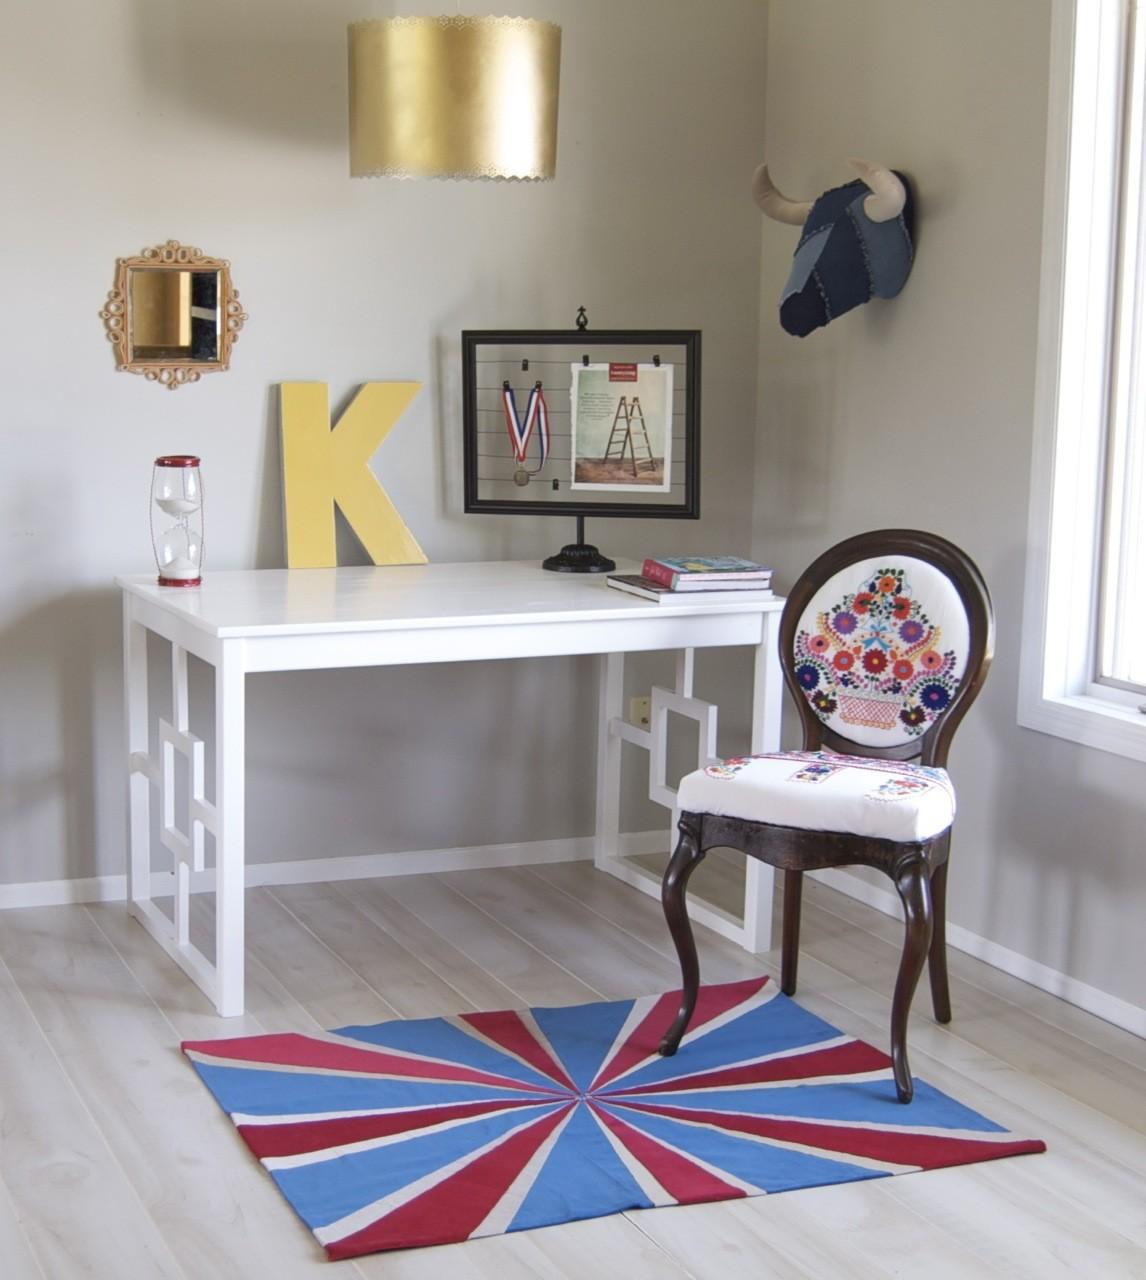 Find Out Transform Plain Table Into Chic